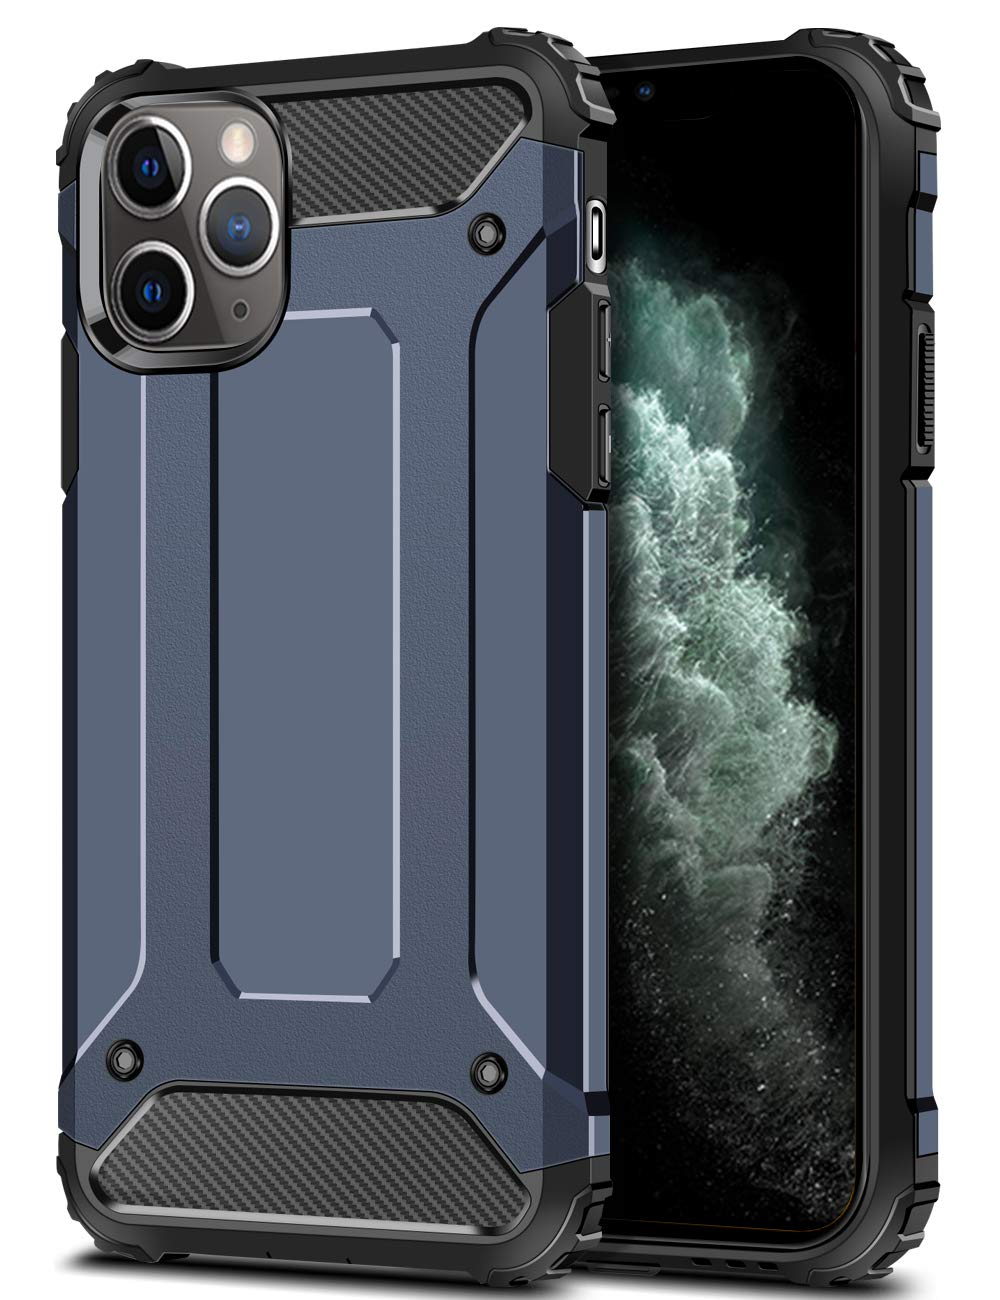 Wollony Armor Case for iPhone 11 Pro Max, Rugged Heavy Duty Hybrid Hard Impact Resistant Slim Phone Case Anti-Scratch Durable Cover for iPhone 11 Pro Max 6.5inch Support Wireless Charging (Deep Blue)